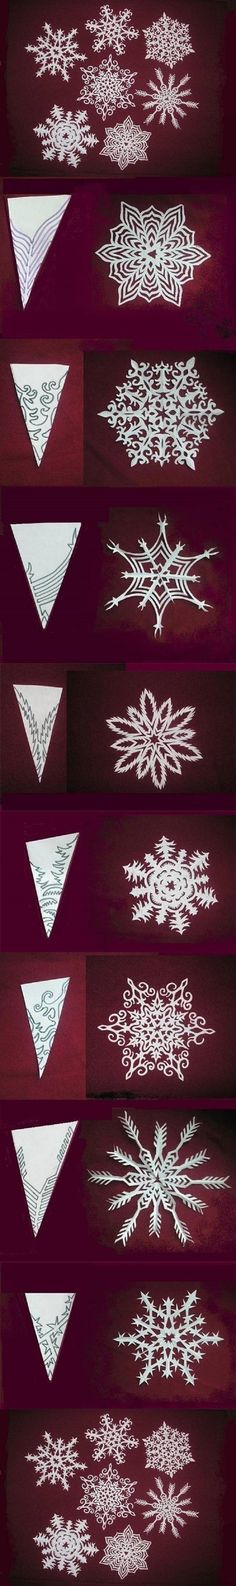 Wonderful DIY Paper Snowflakes With Pattern - 16 Winter Wonderland DIY Paper Decorations                                                                                                                                                                                 More